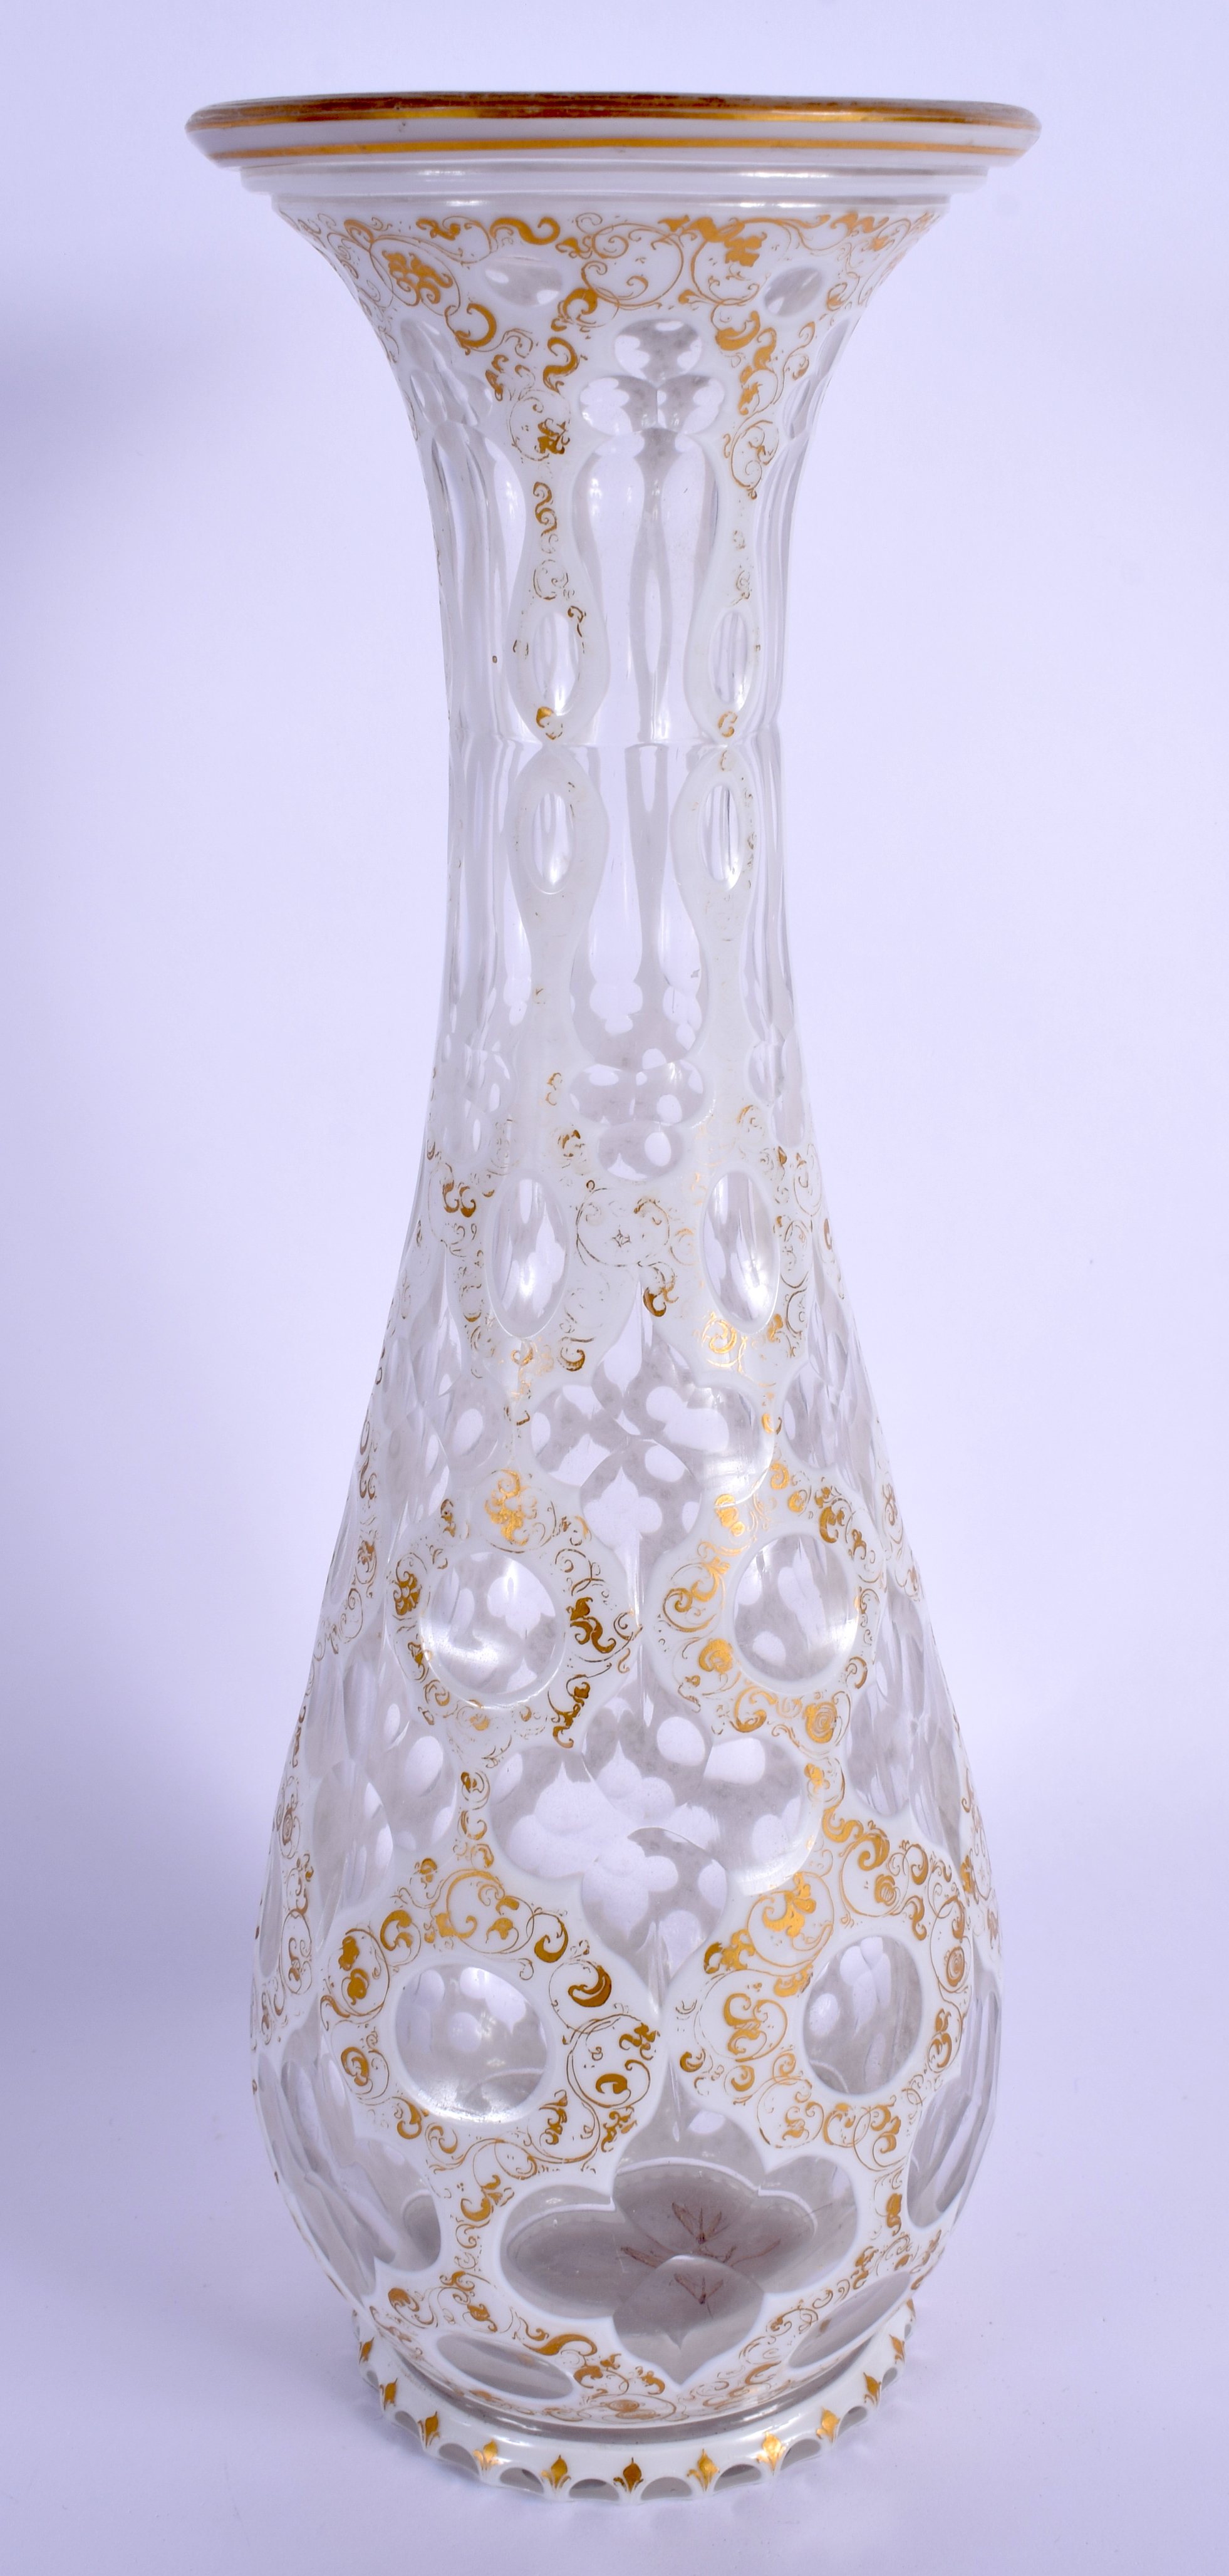 A 19TH CENTURY BOHEMIAN WHITE OVERLAID VASE painted with gilt and foliage. 32 cm high. - Image 2 of 3